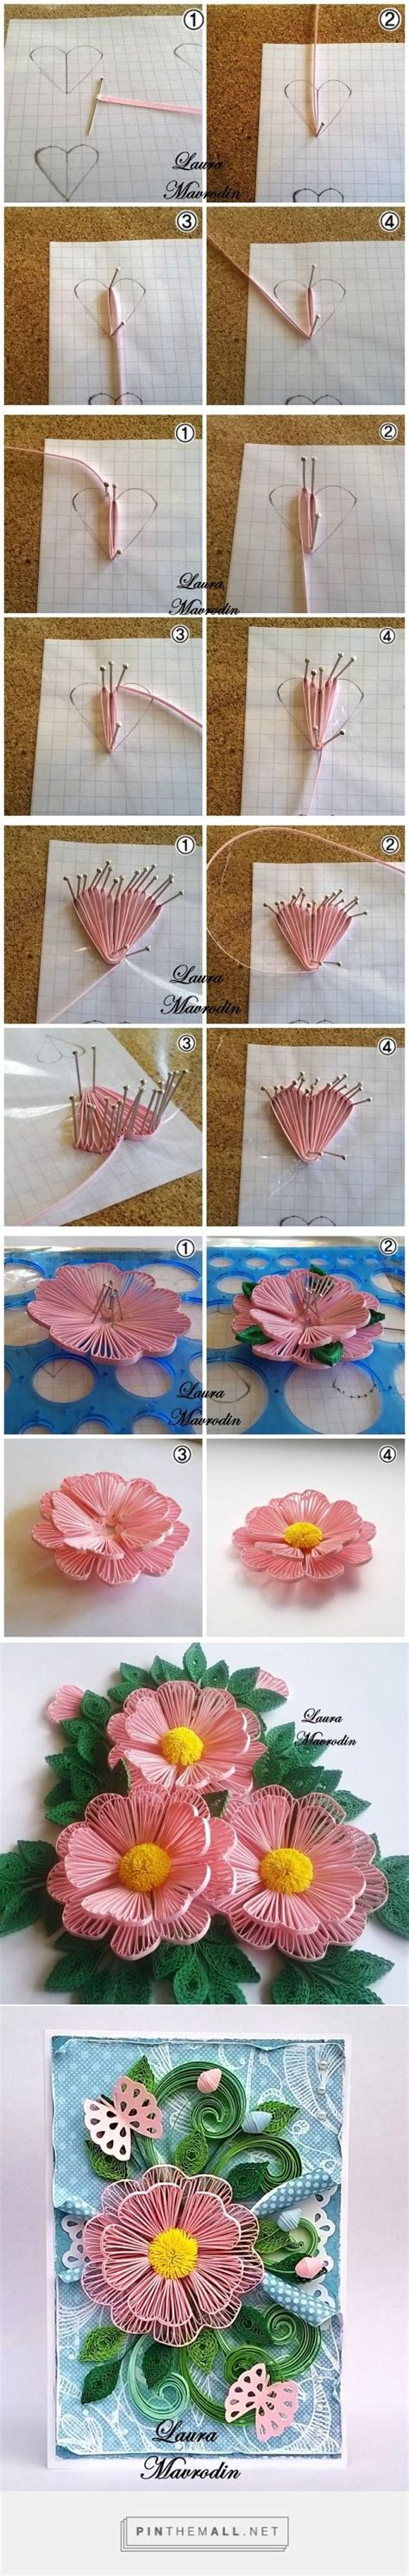 quilling kwiaty tutorial 489 best images about quilling tutorials videos